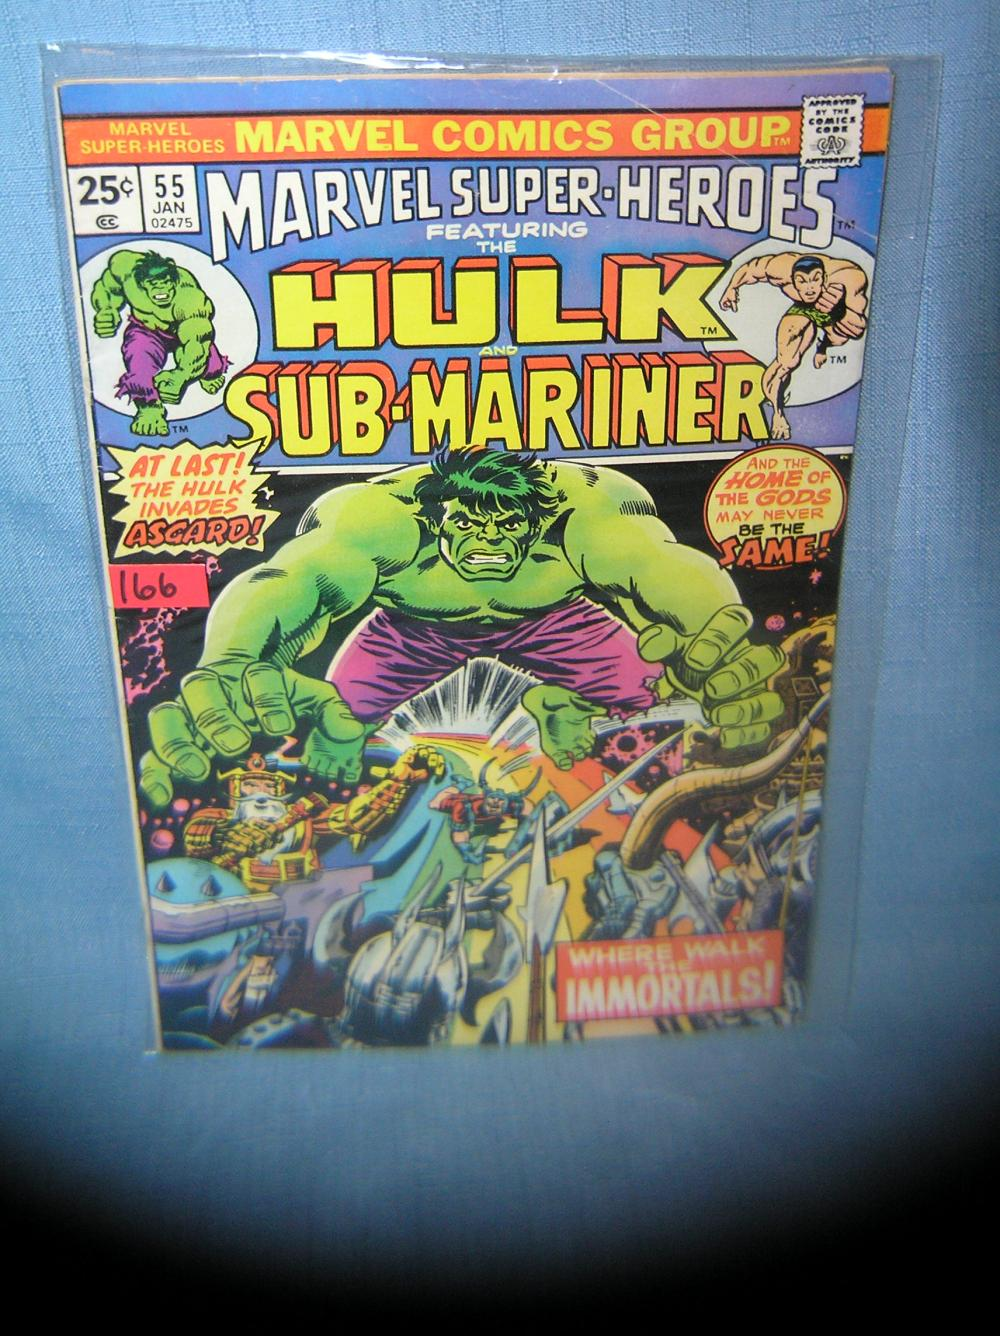 VINTAGE MARVEL COMIC BOOK